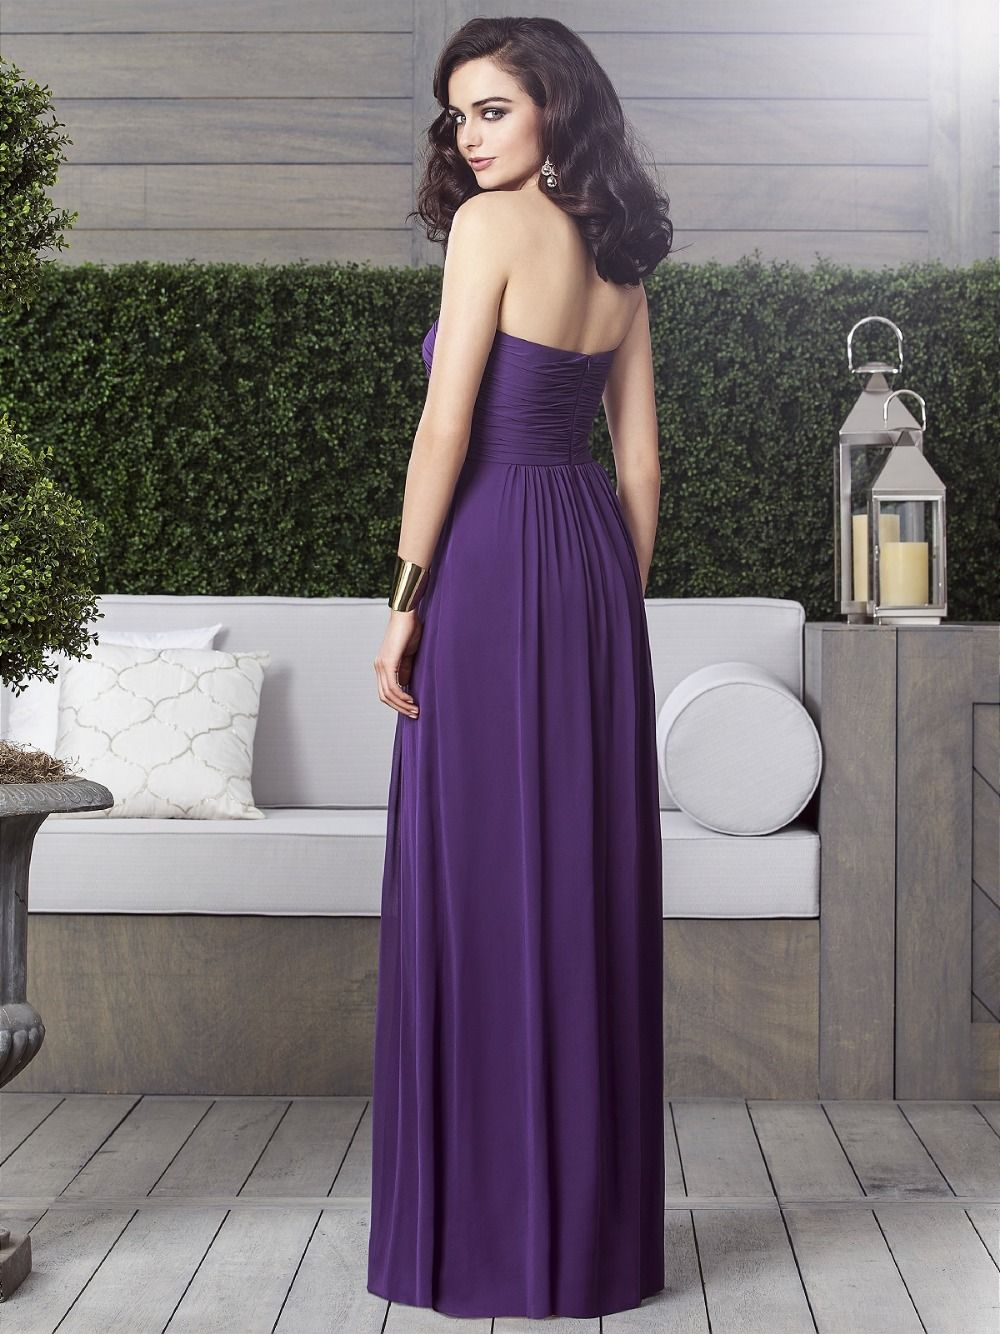 Eggplant purple bridesmaid dresses top 100 dark purple eggplant purple bridesmaid dresses ombrellifo Image collections